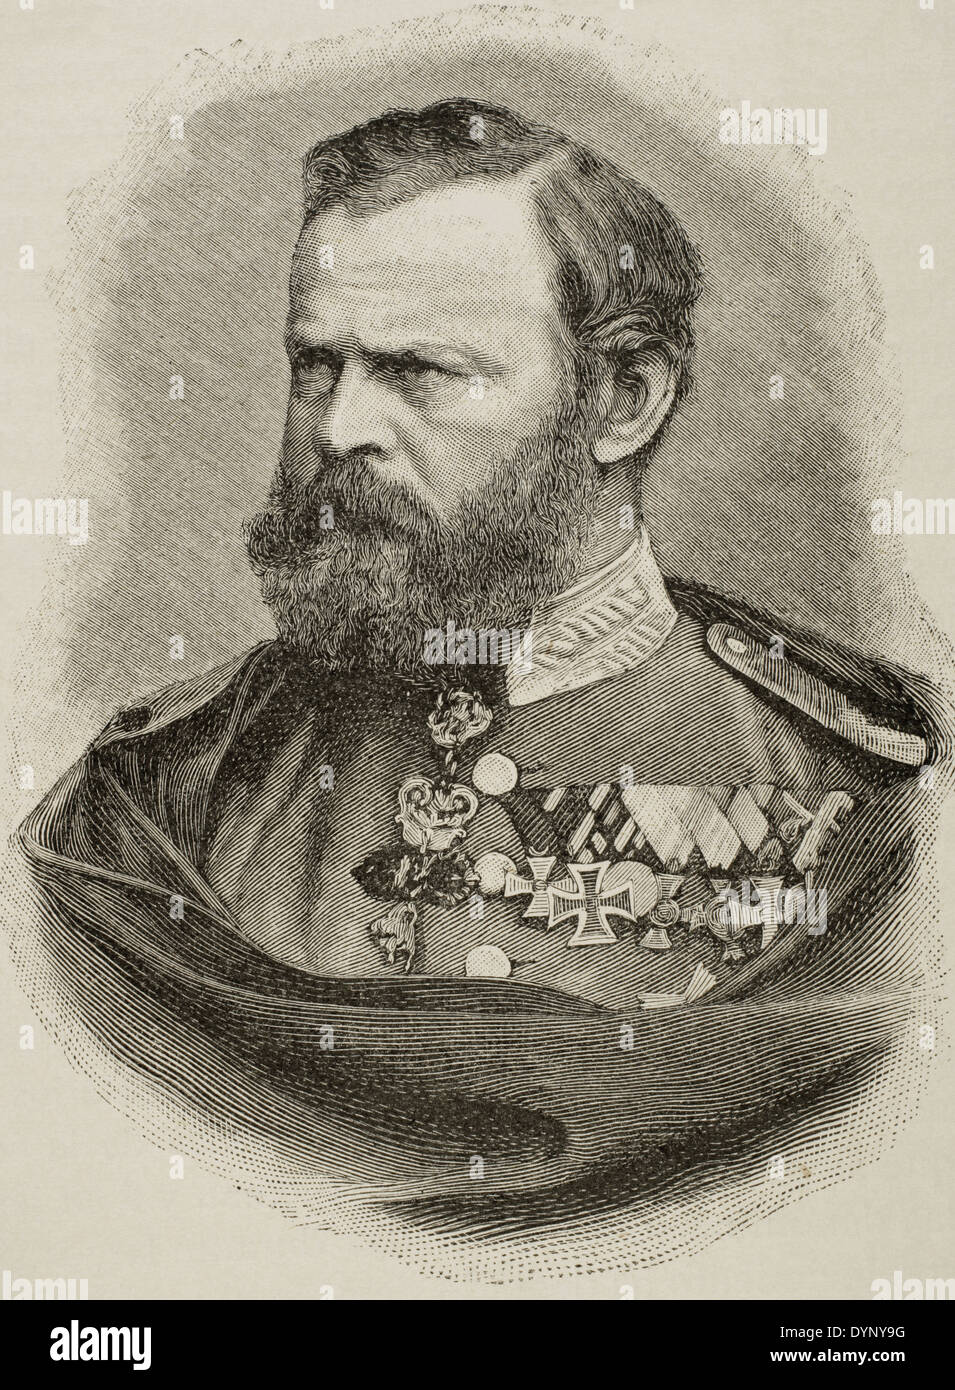 Prince Luitpold of Bavaria (1821-1912). Prince regent and de facto King of Bavaria. Engraving. Universal History, 1885. - Stock Image